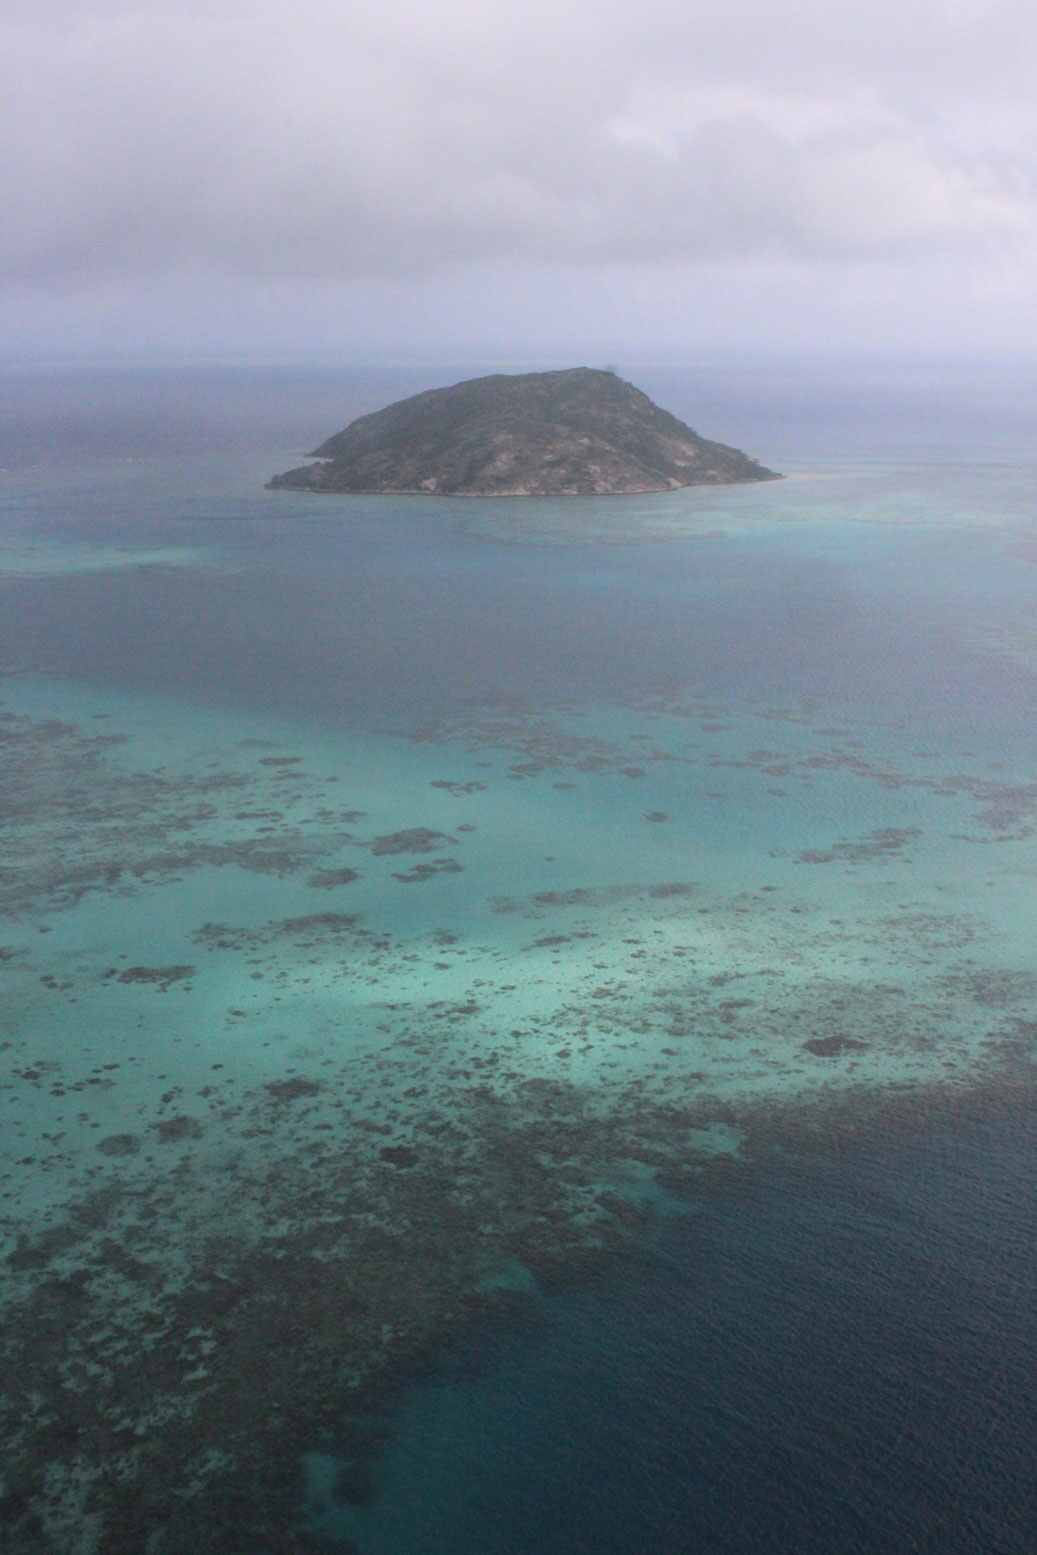 island-on-great-barrier-reef-off-cairns-in-far-north-queensland-data